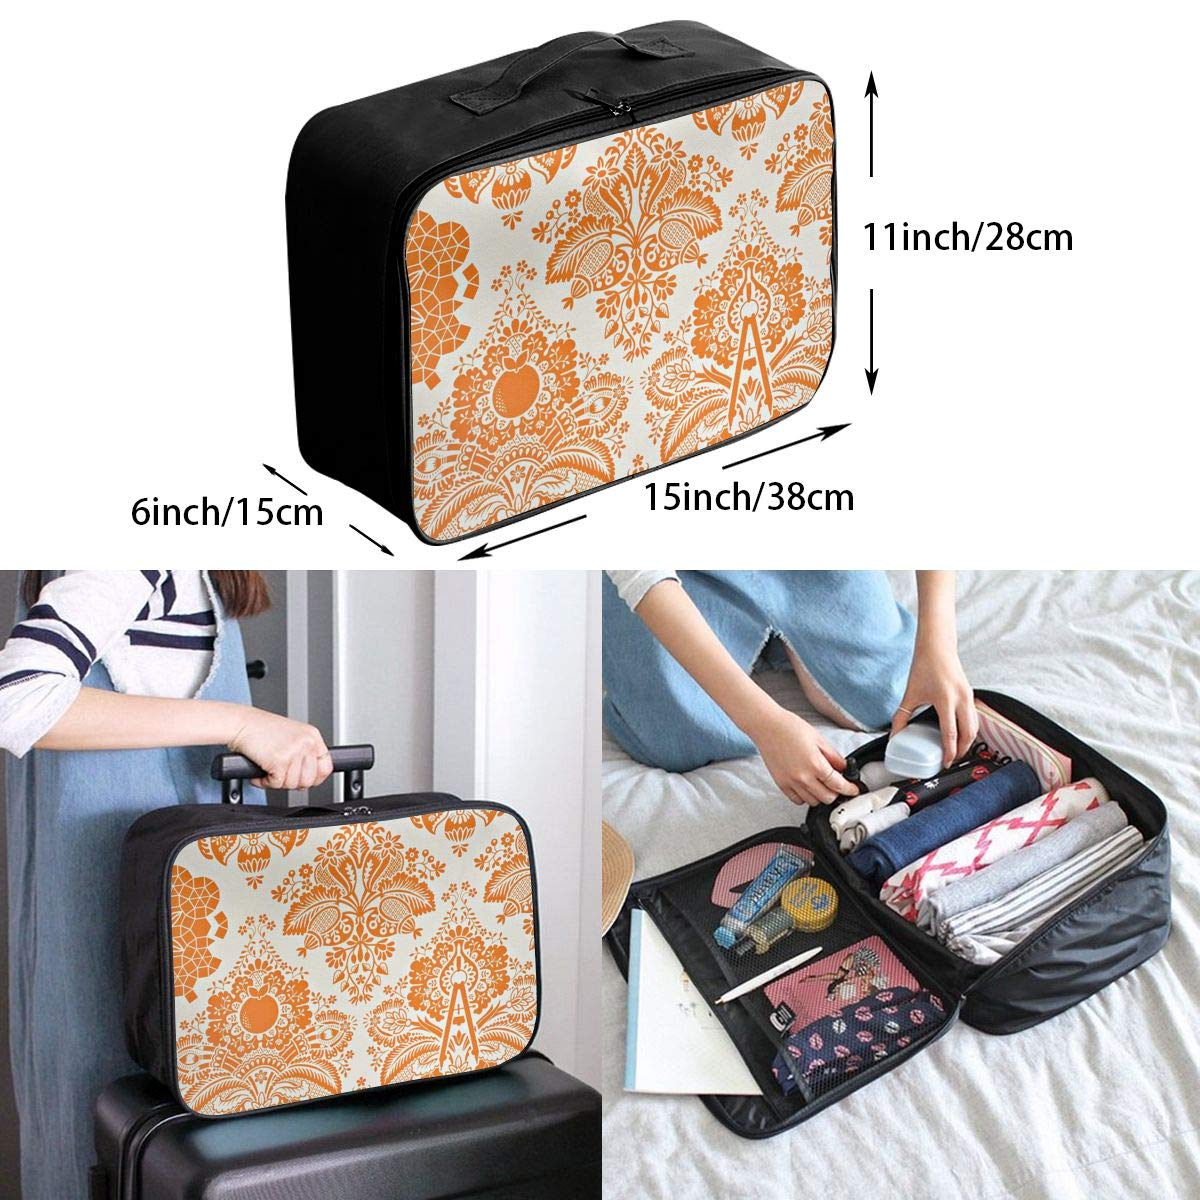 Travel Luggage Duffle Bag Lightweight Portable Handbag Orange Retro Floral Pattern Large Capacity Waterproof Foldable Storage Tote